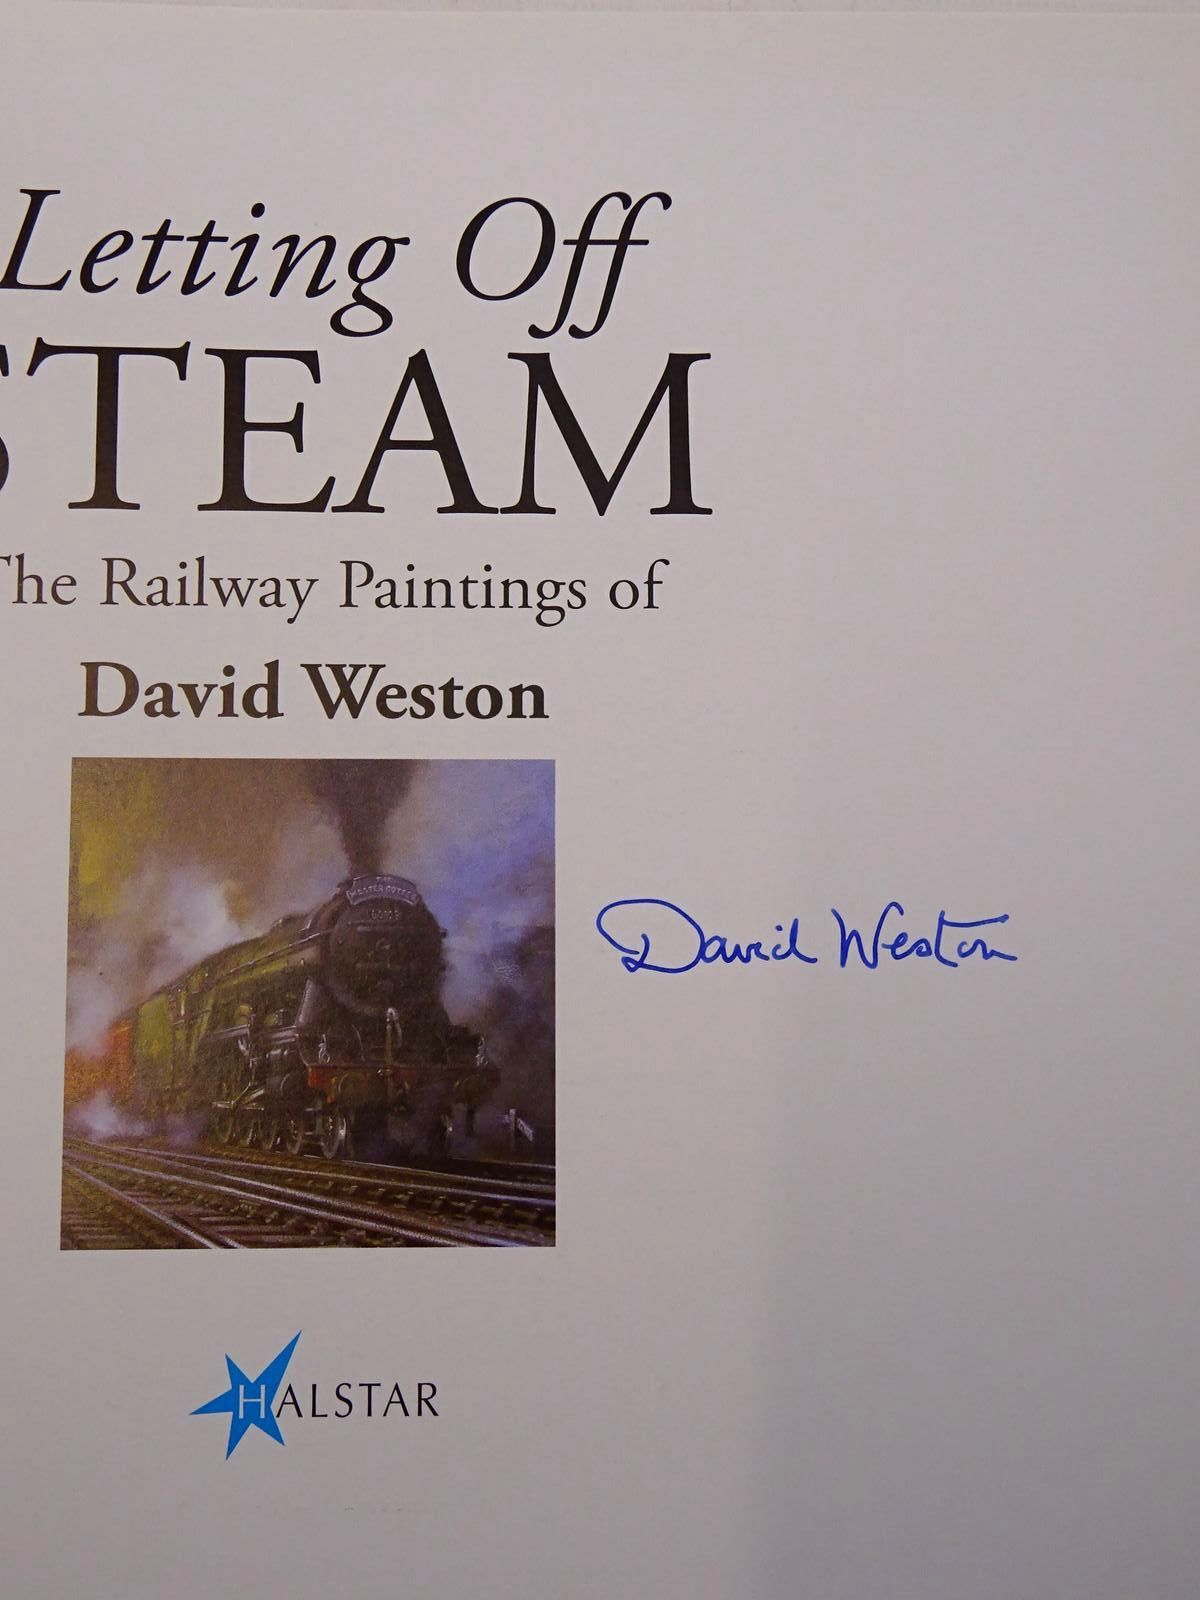 Photo of LETTING OFF STEAM THE RAILWAY PAINTINGS OF DAVID WESTON written by Weston, David illustrated by Weston, David published by Halstar (STOCK CODE: 2131457)  for sale by Stella & Rose's Books